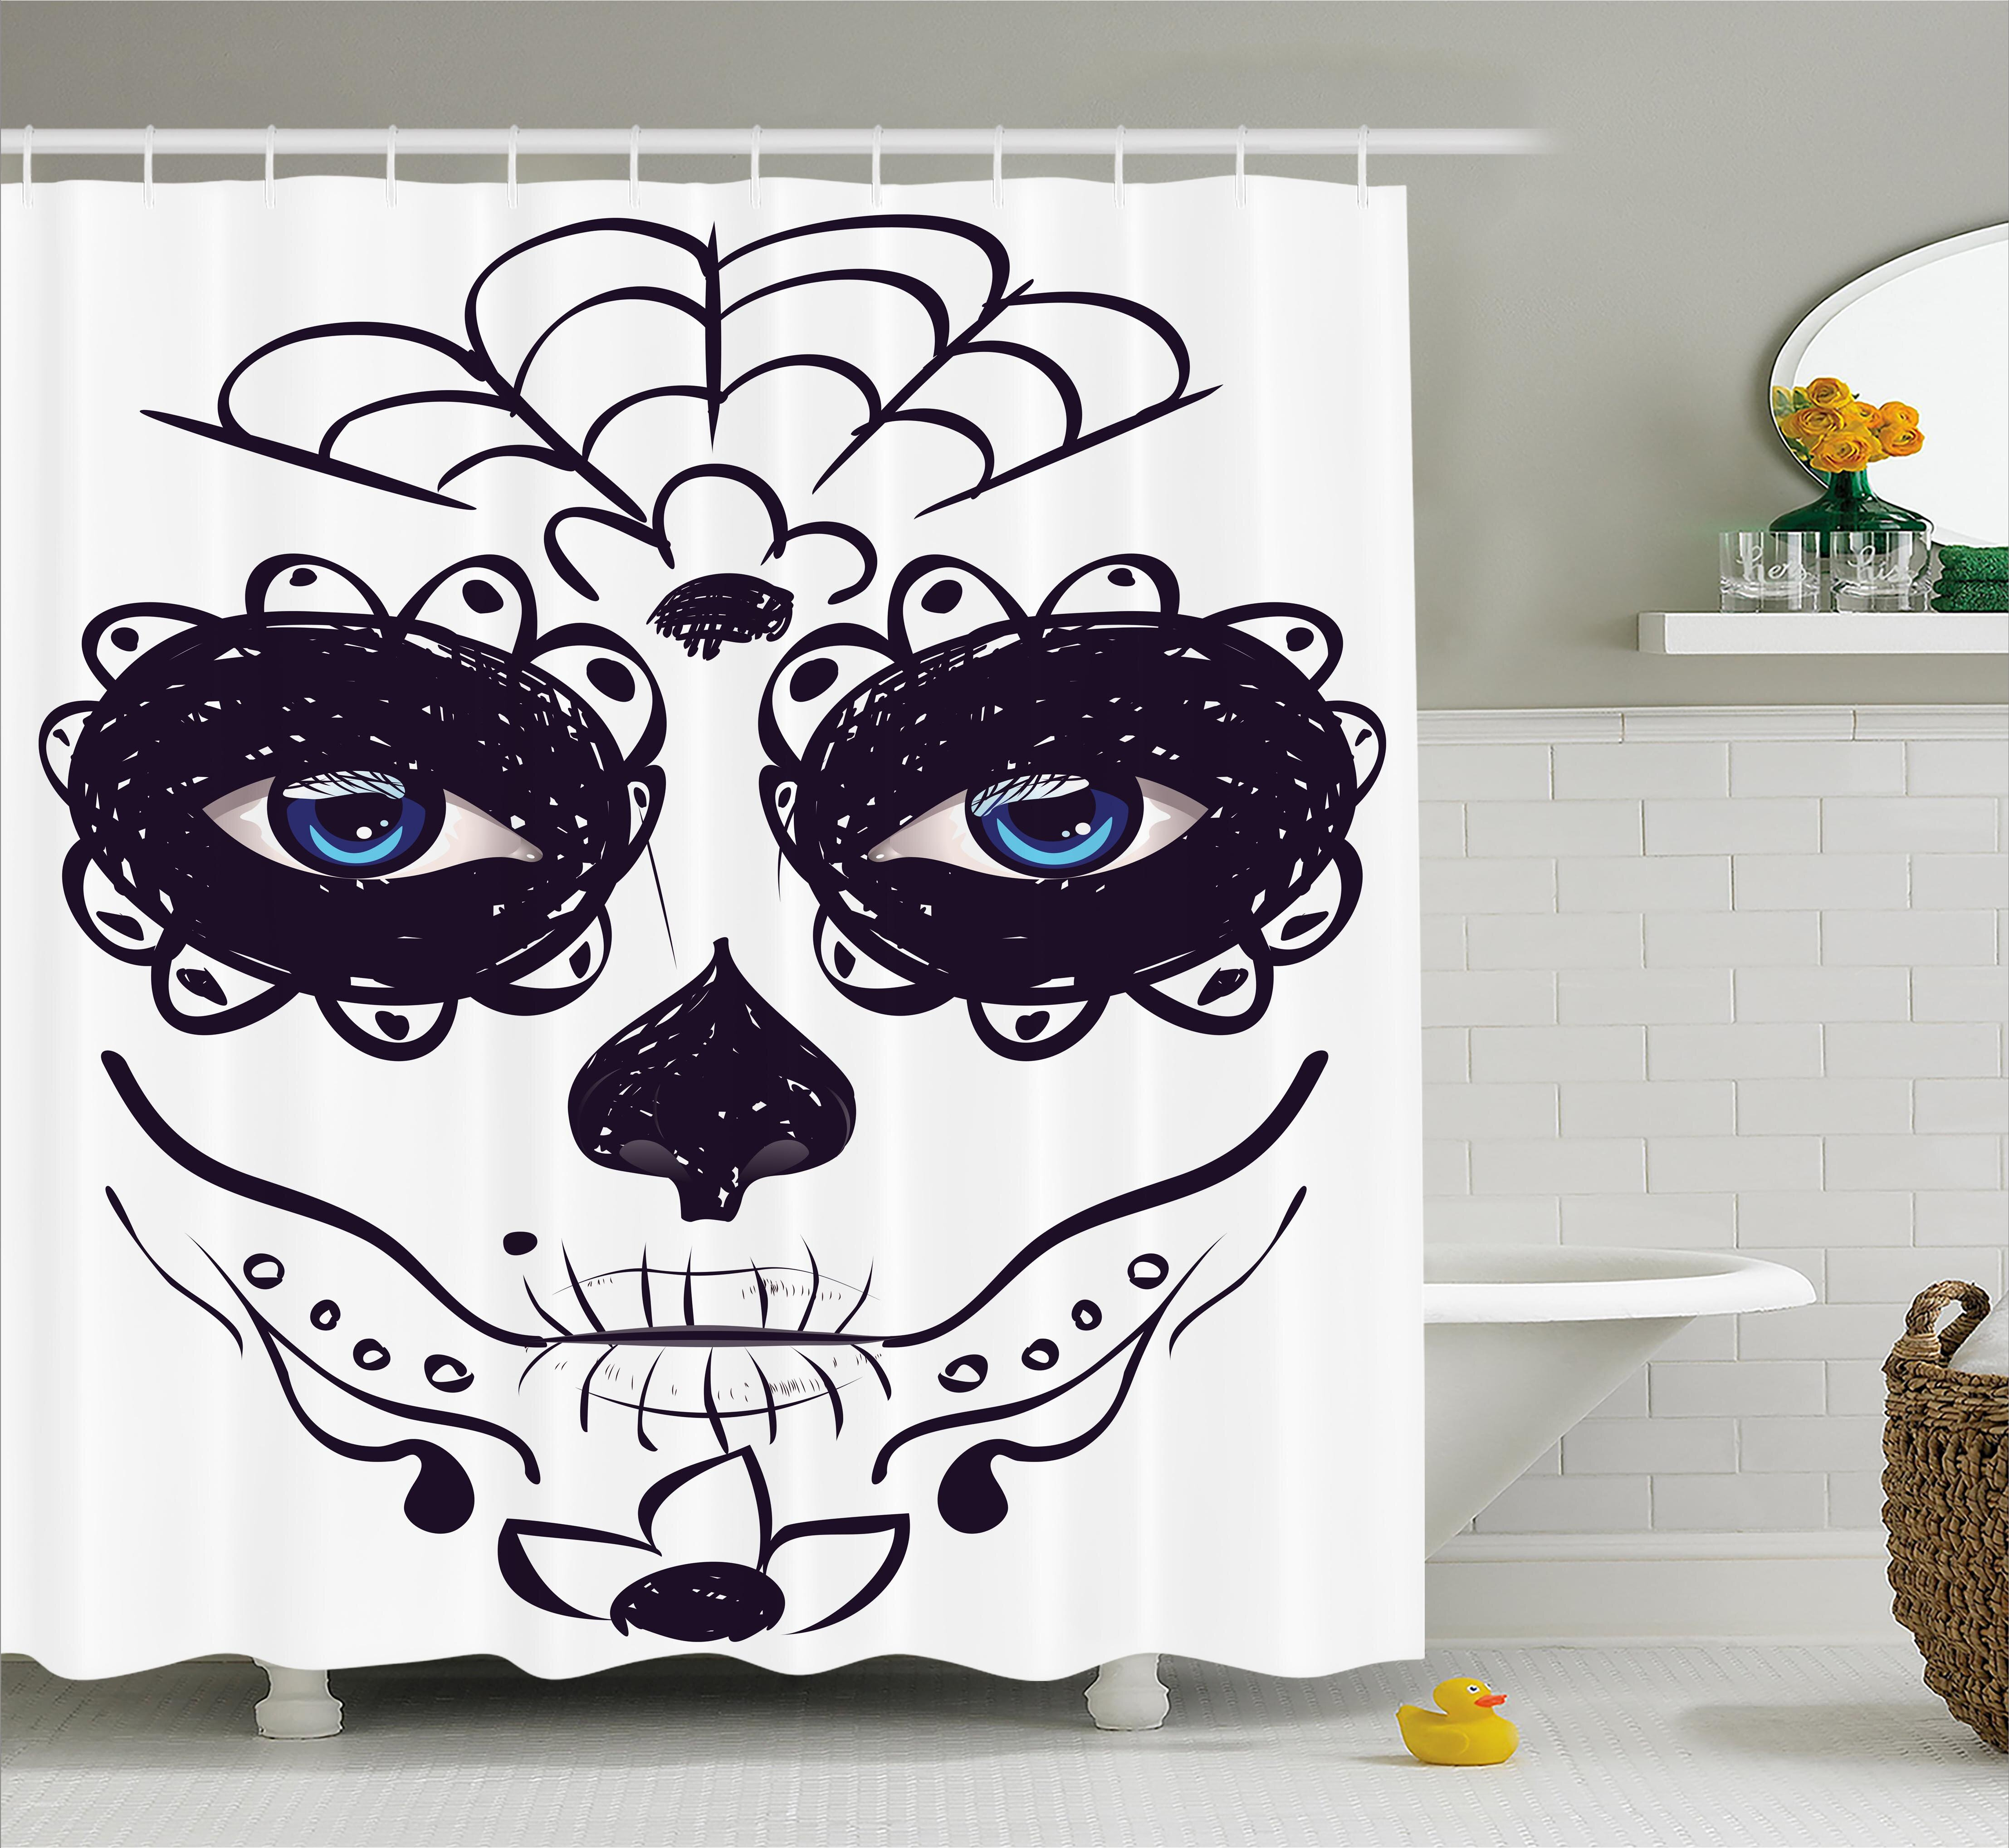 Ebern Designs Lorie Day Of The Dead Dia De Los Muertos Sugar Skull Girl Face With Mask Make Up Shower Curtain